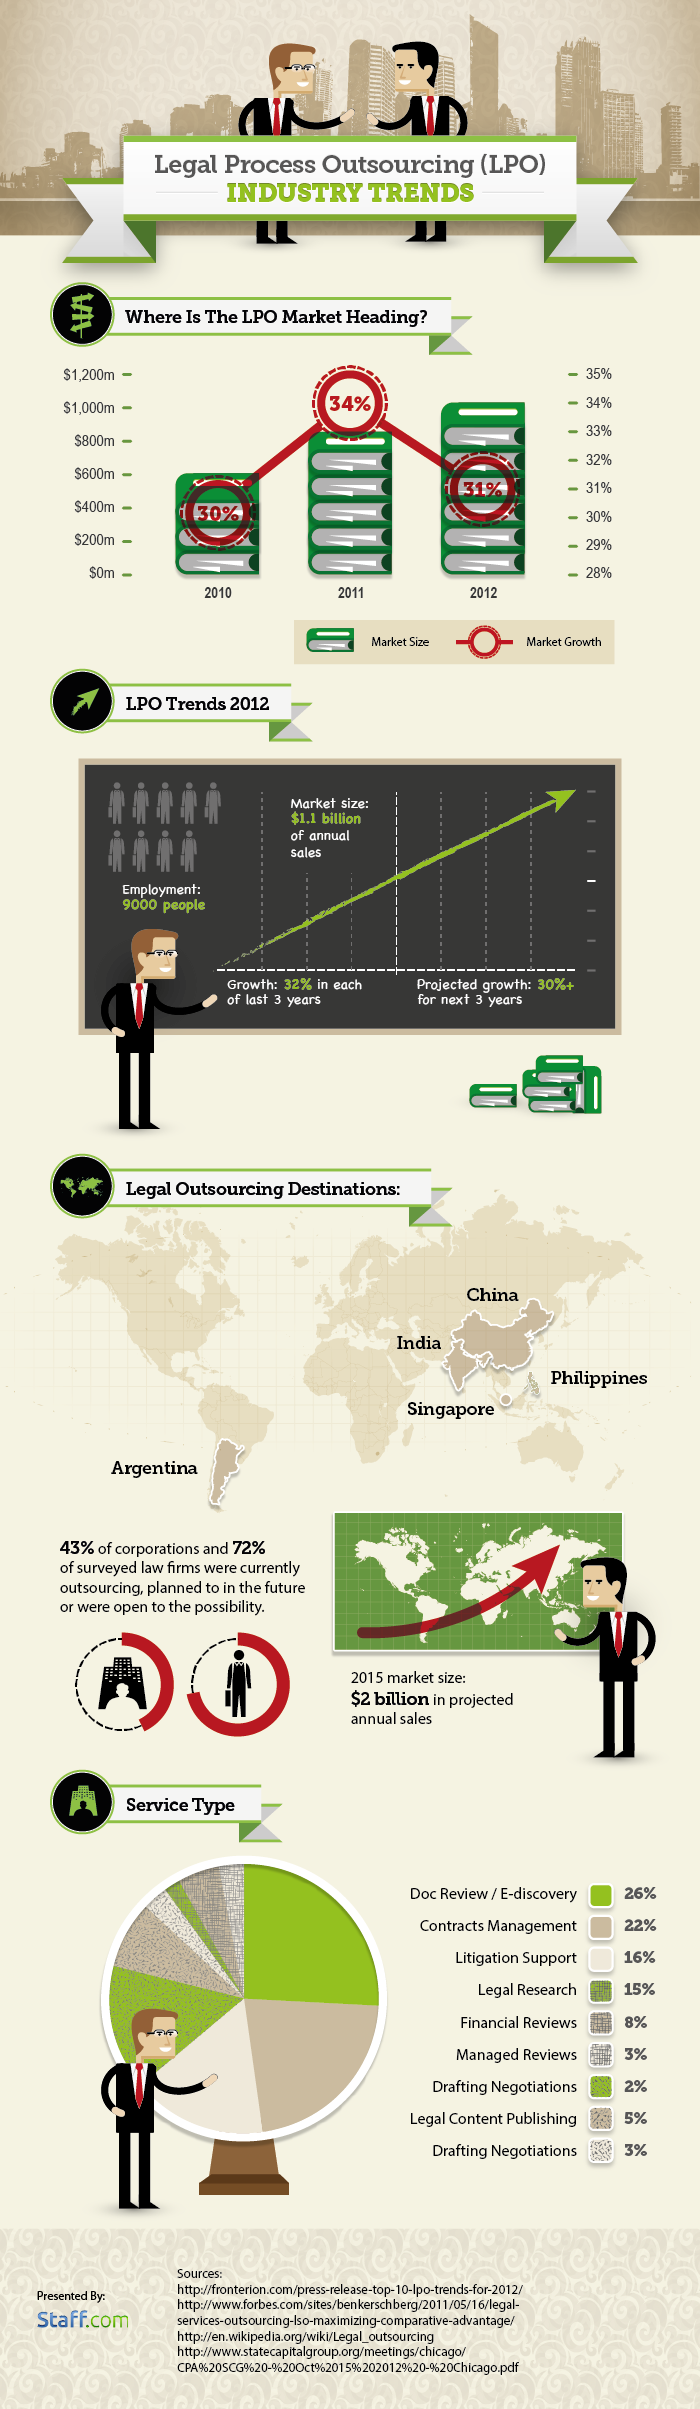 Legal Process Outsourcing Industry-Infographic